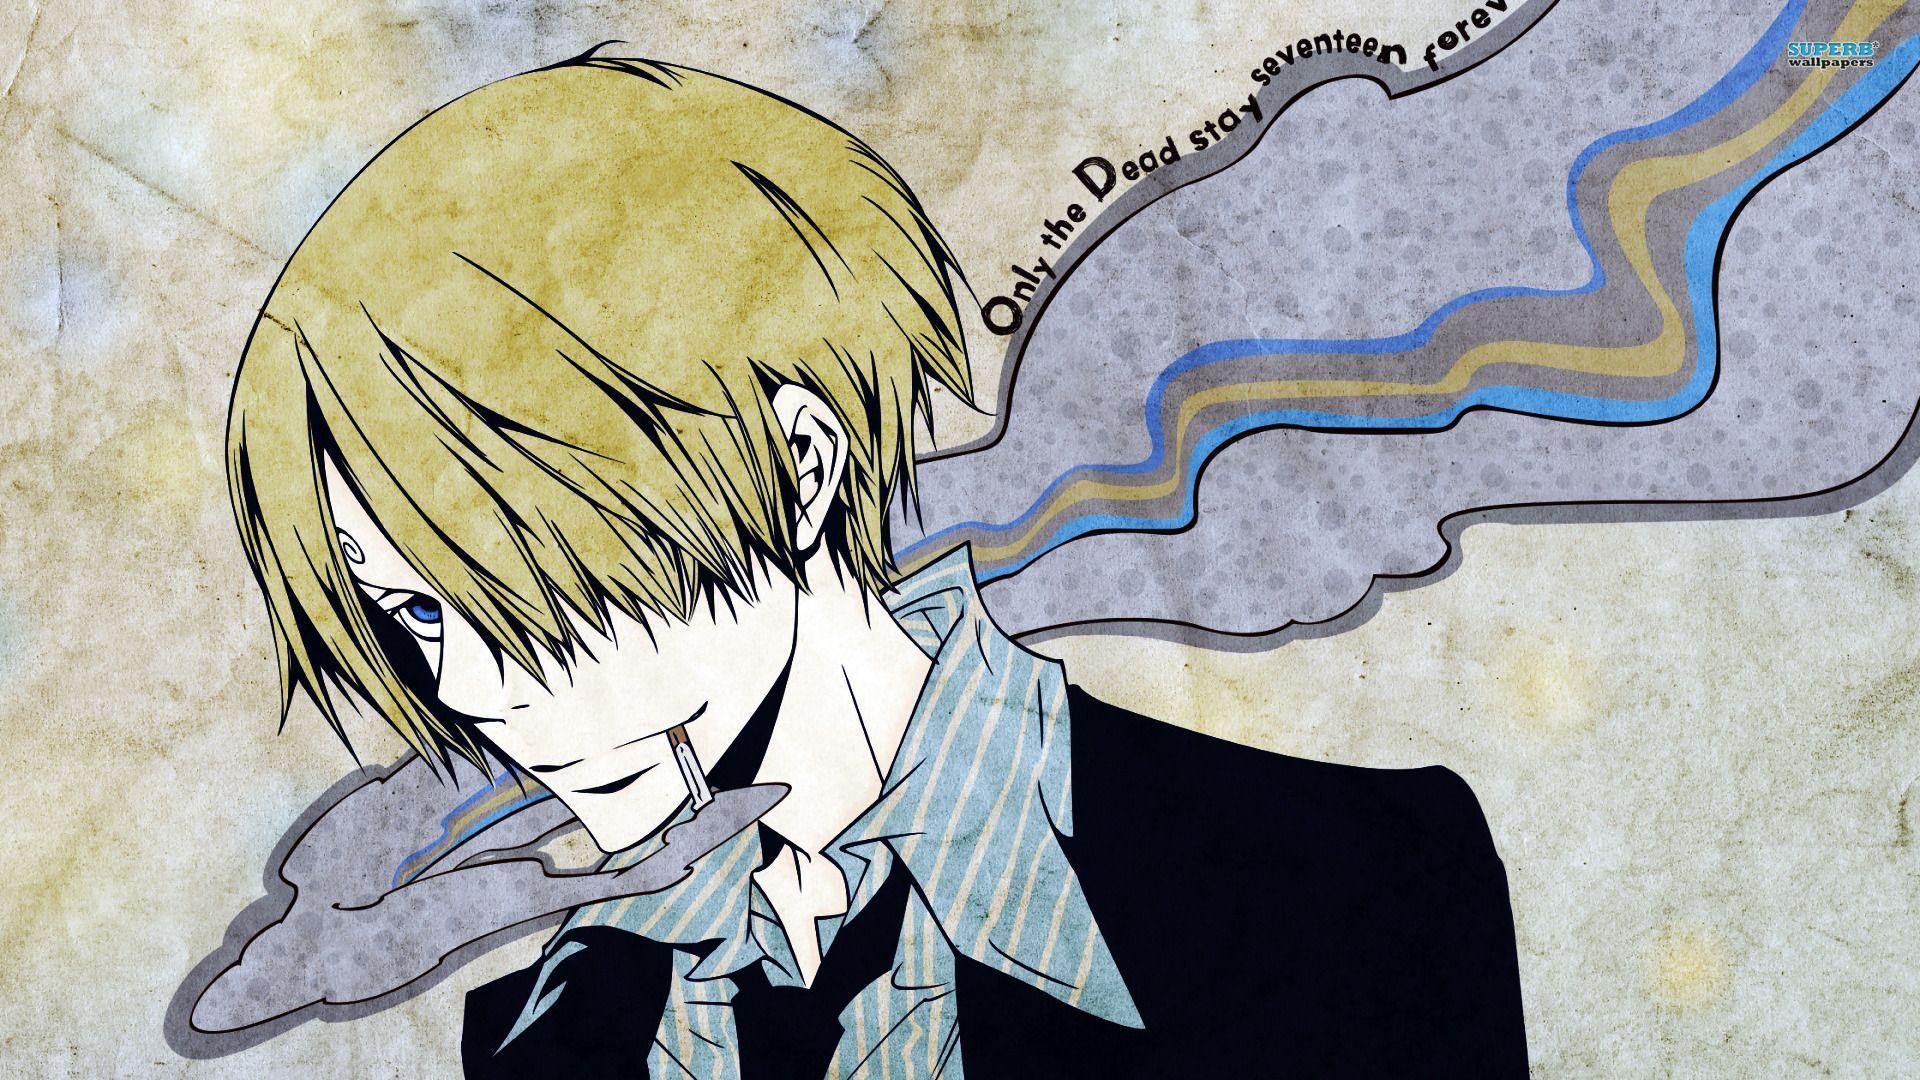 Sanji One Piece Wallpaper Anime Wallpapers 14096 Download